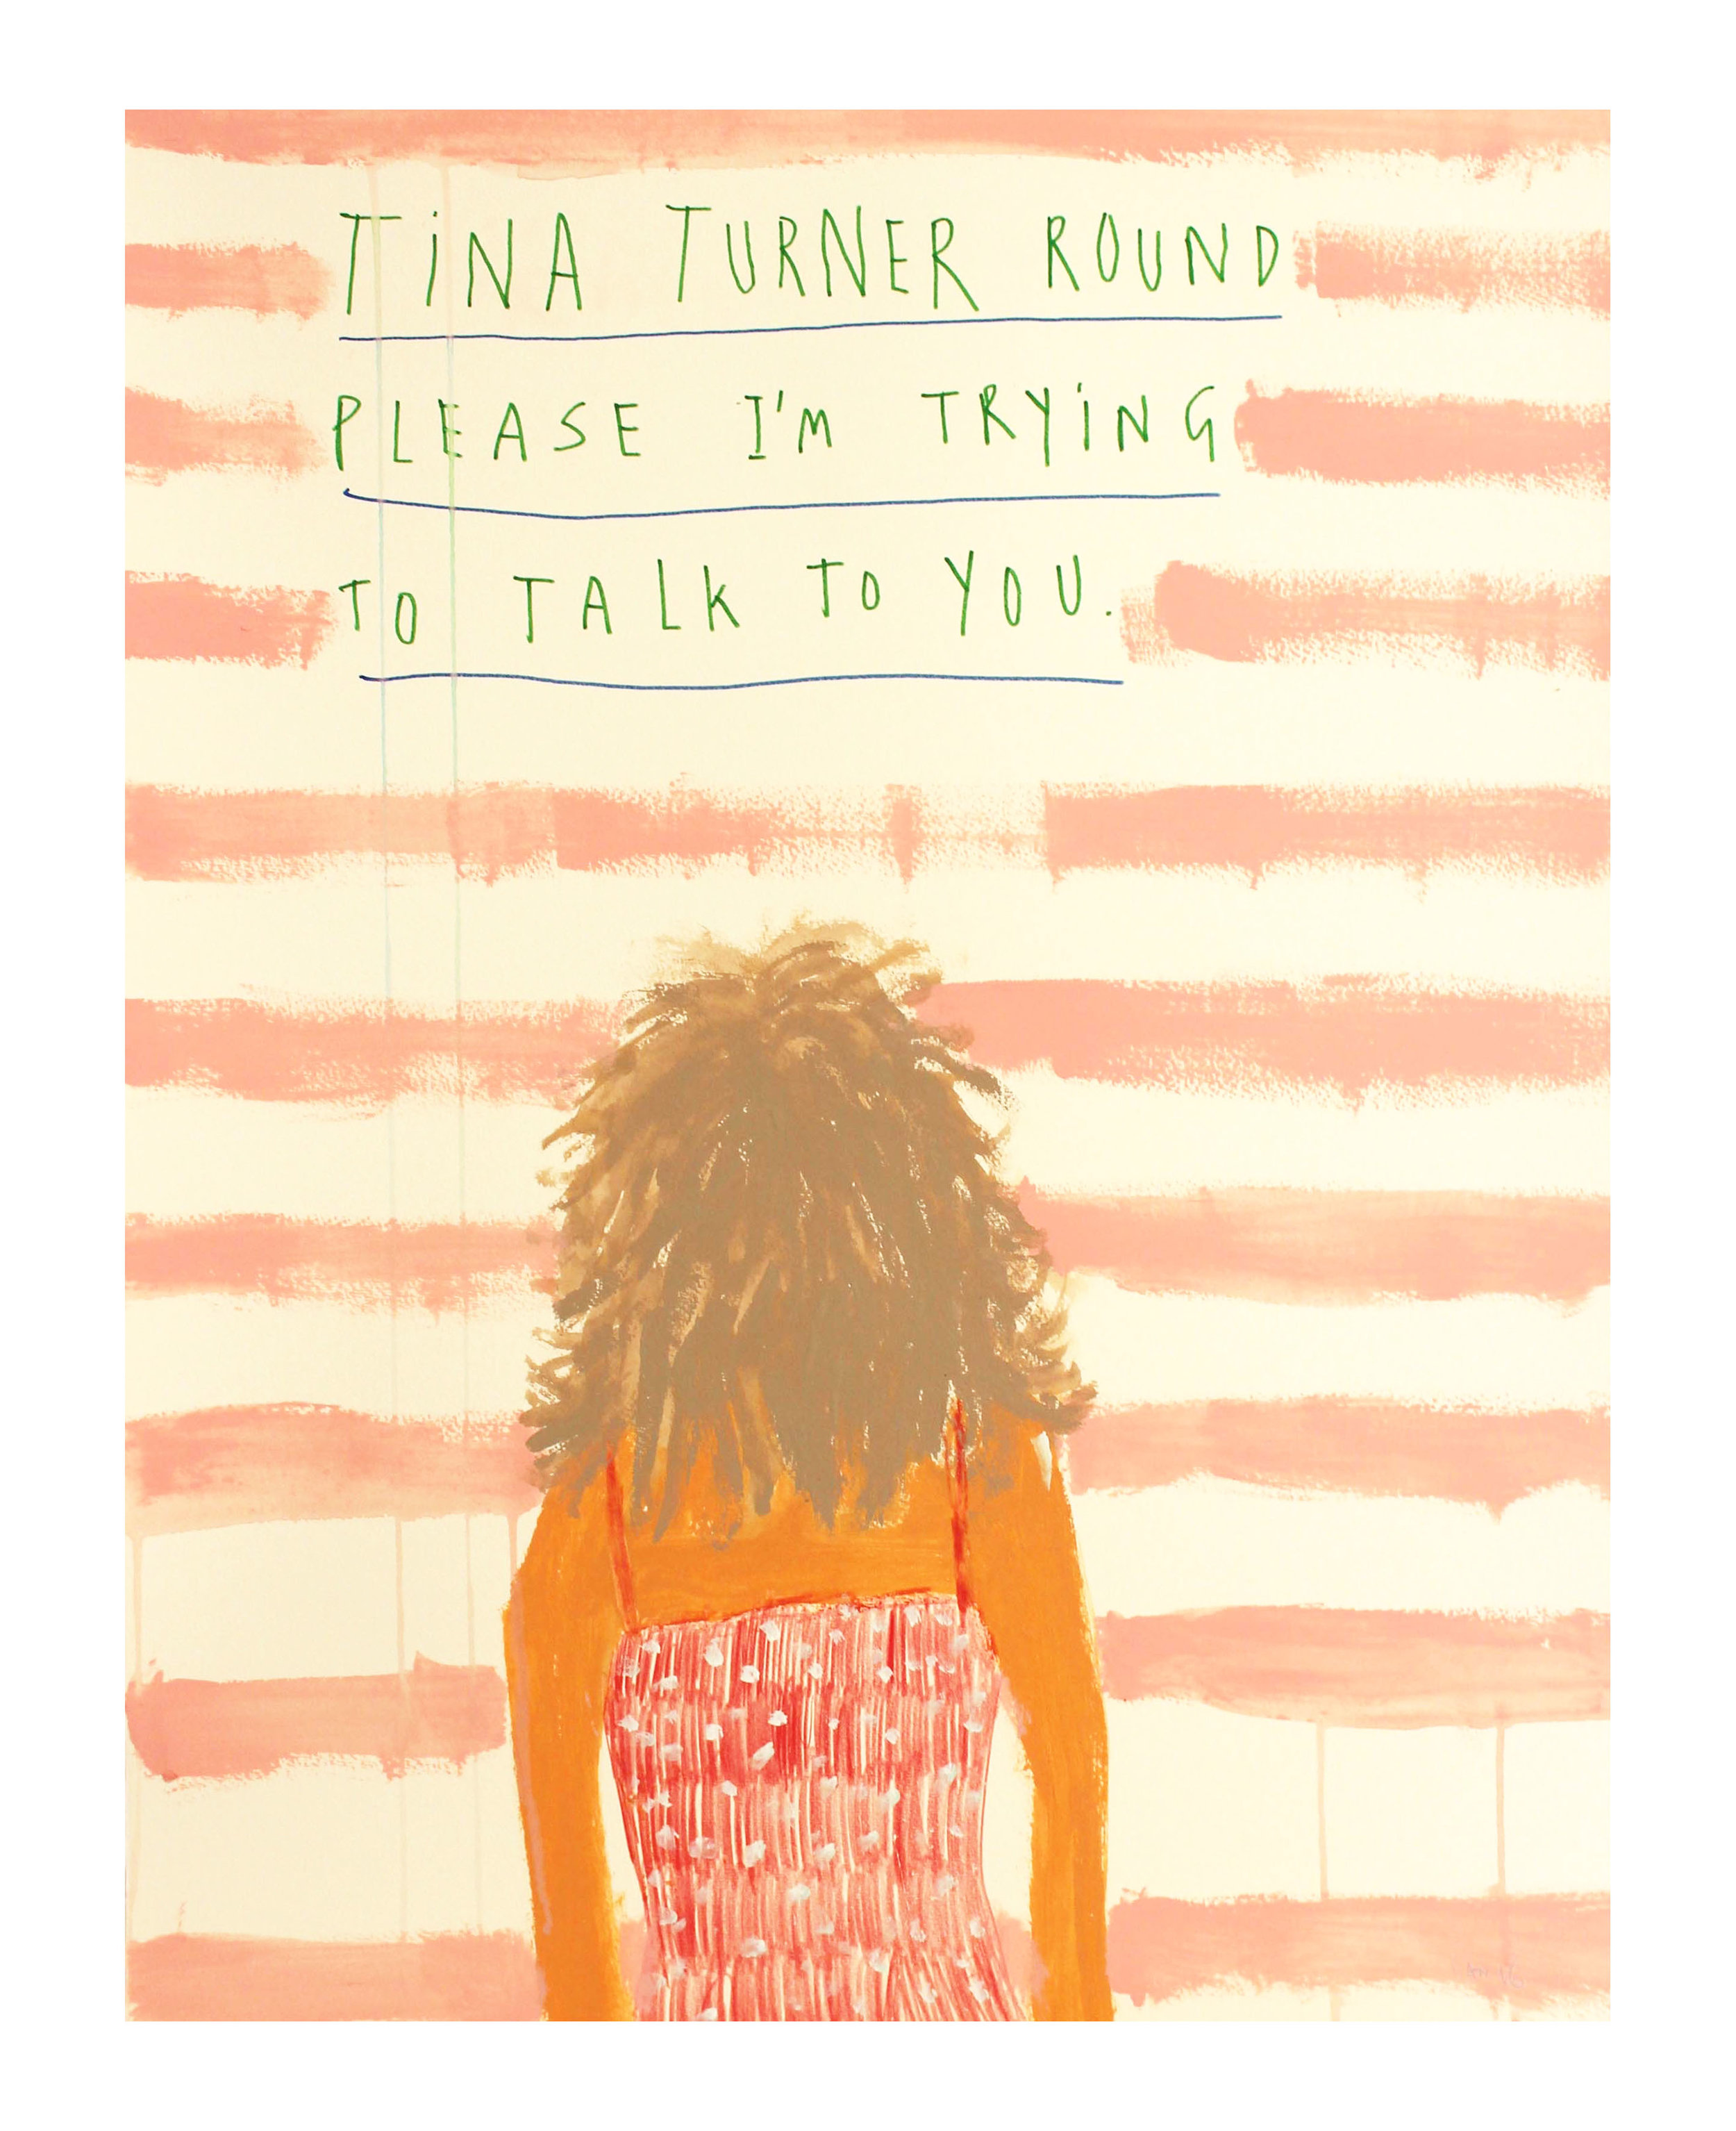 Tina Turner Around, House paint, ink and colour pencils on paper, 76x57cm